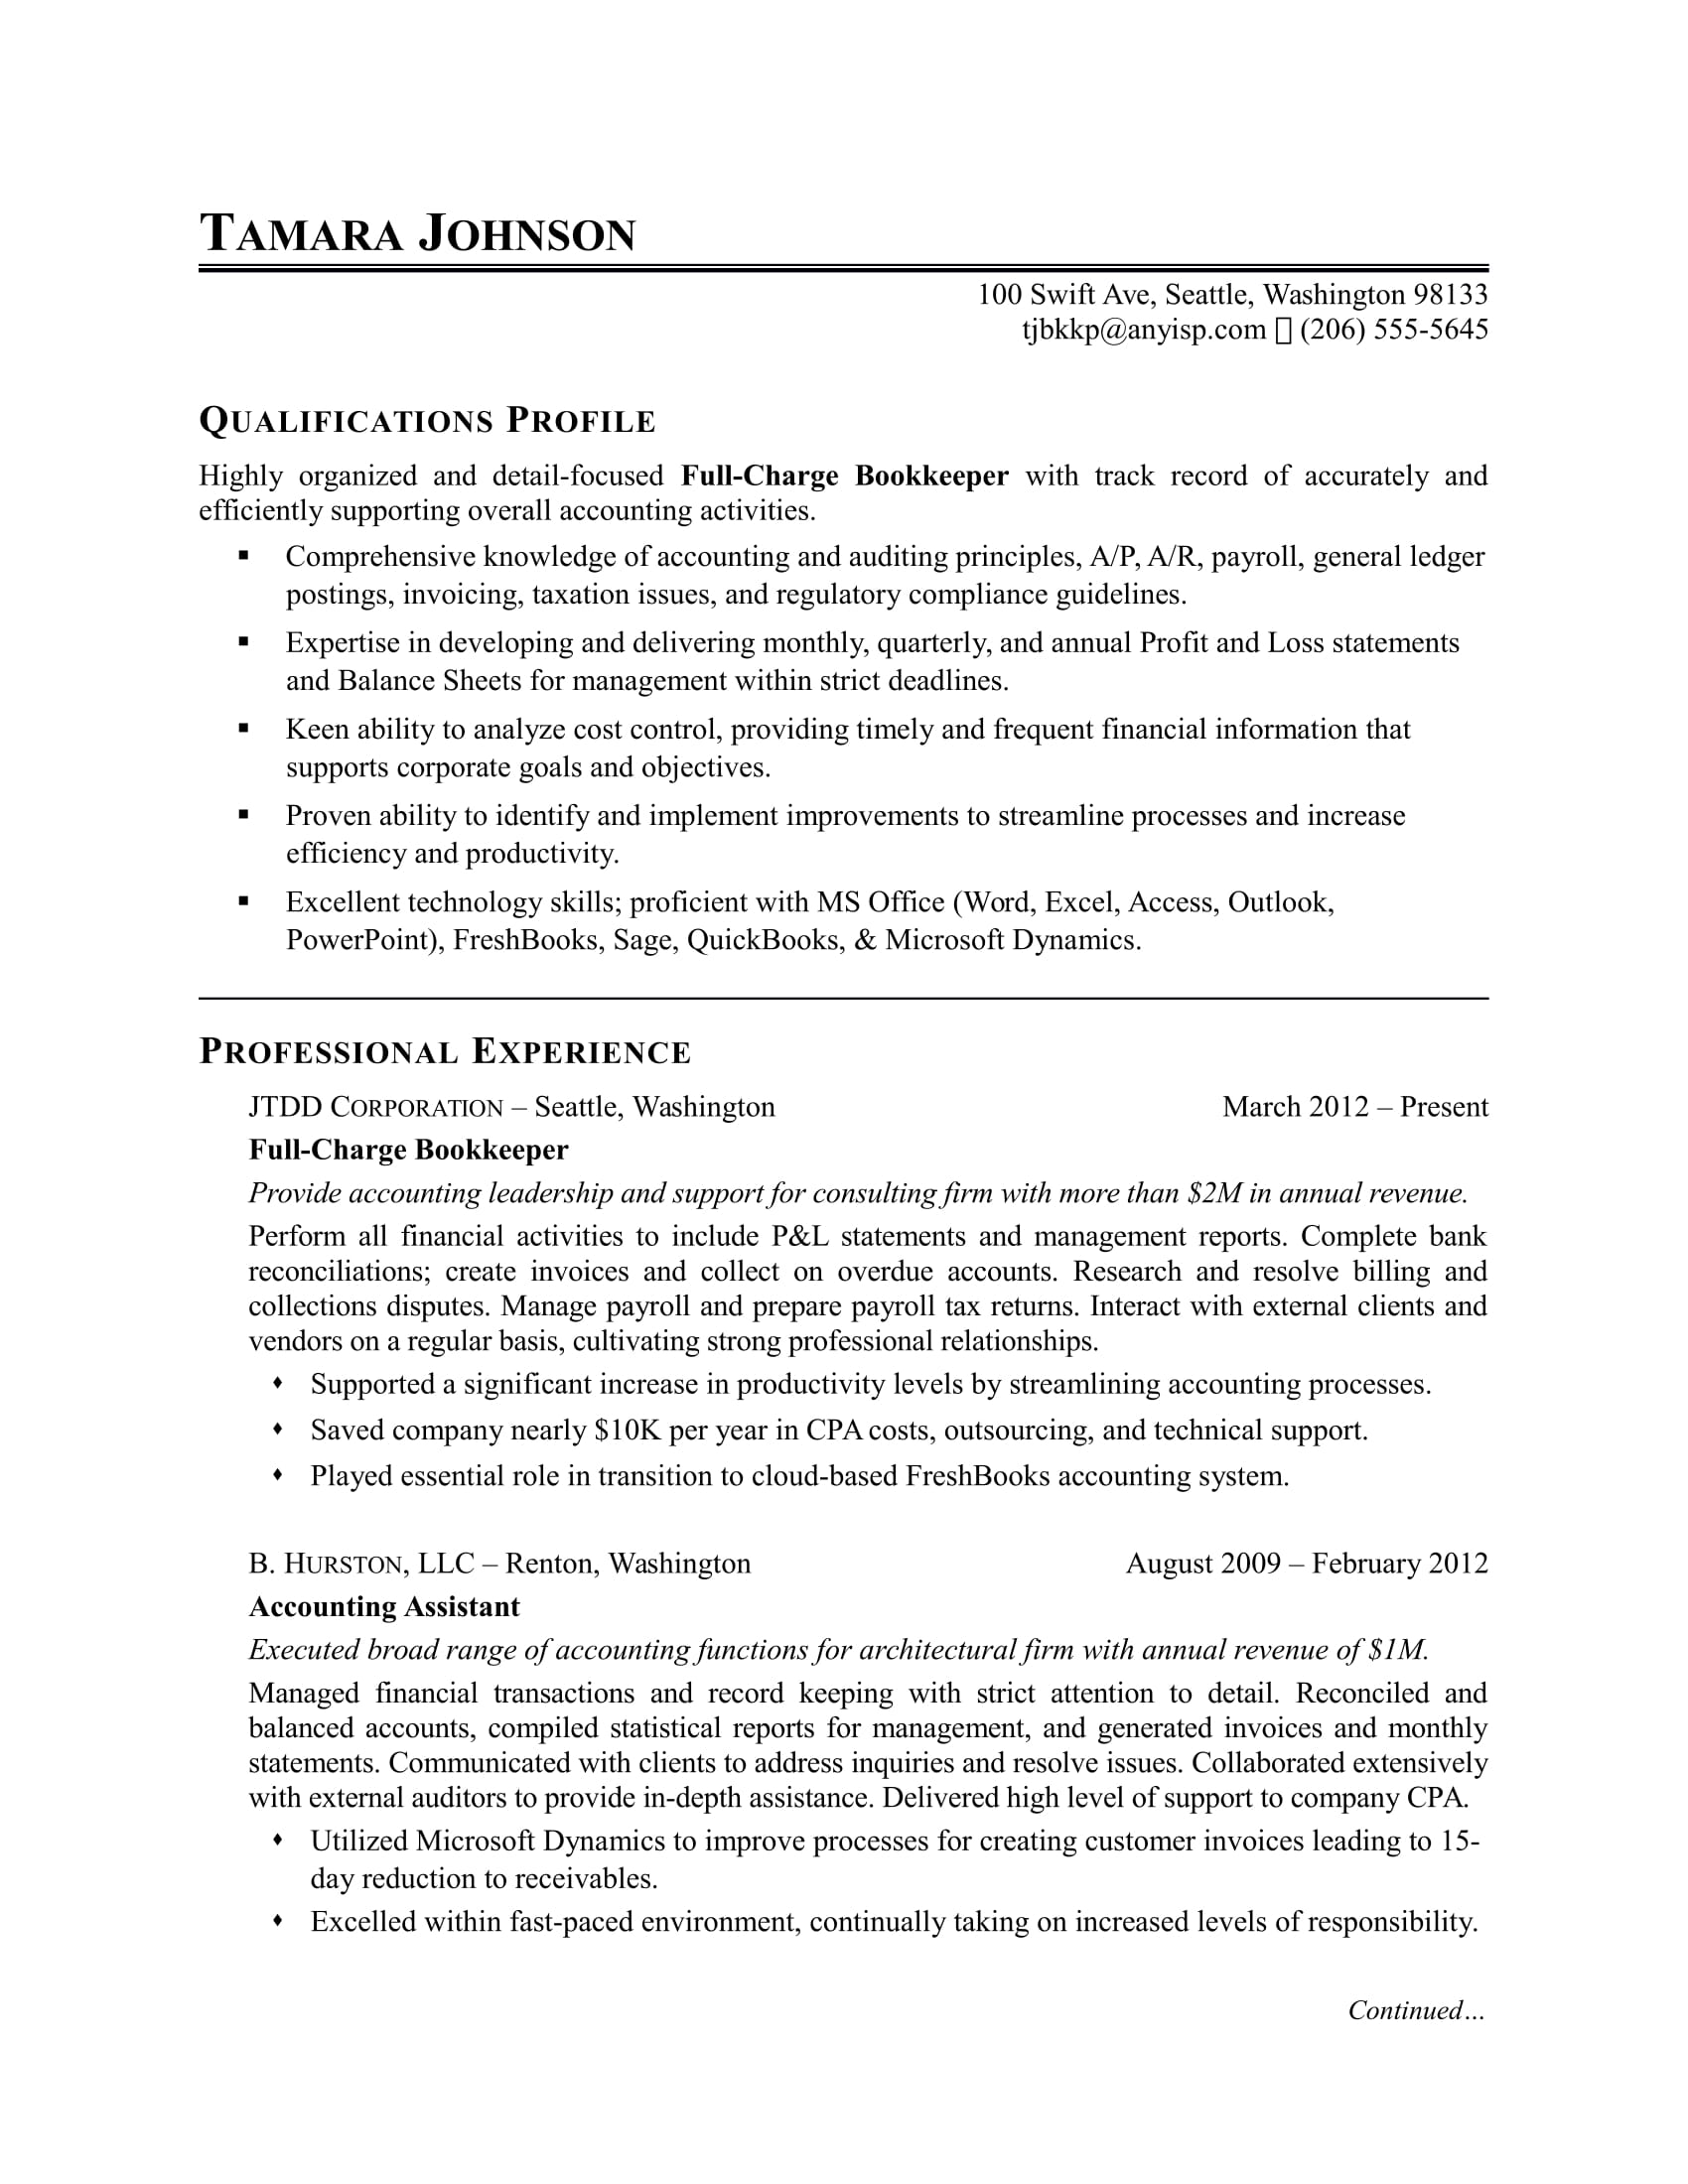 Sample Resume For A Bookkeeper On Bookkeeper Resume Examples